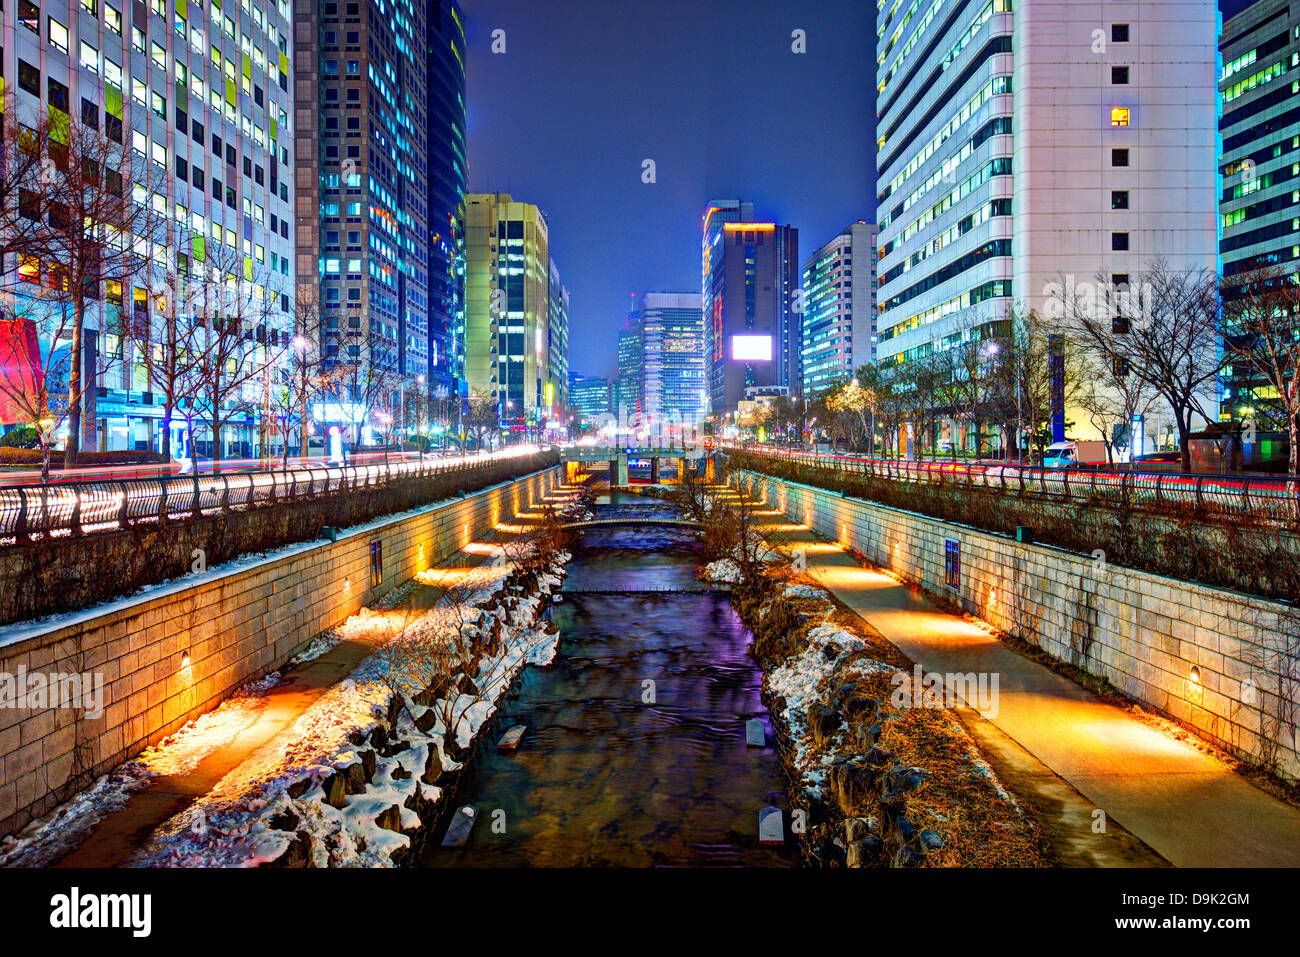 Cheonggyecheon stream in Seoul, South Korea is the result of a massive urban renewal project. - Stock Image